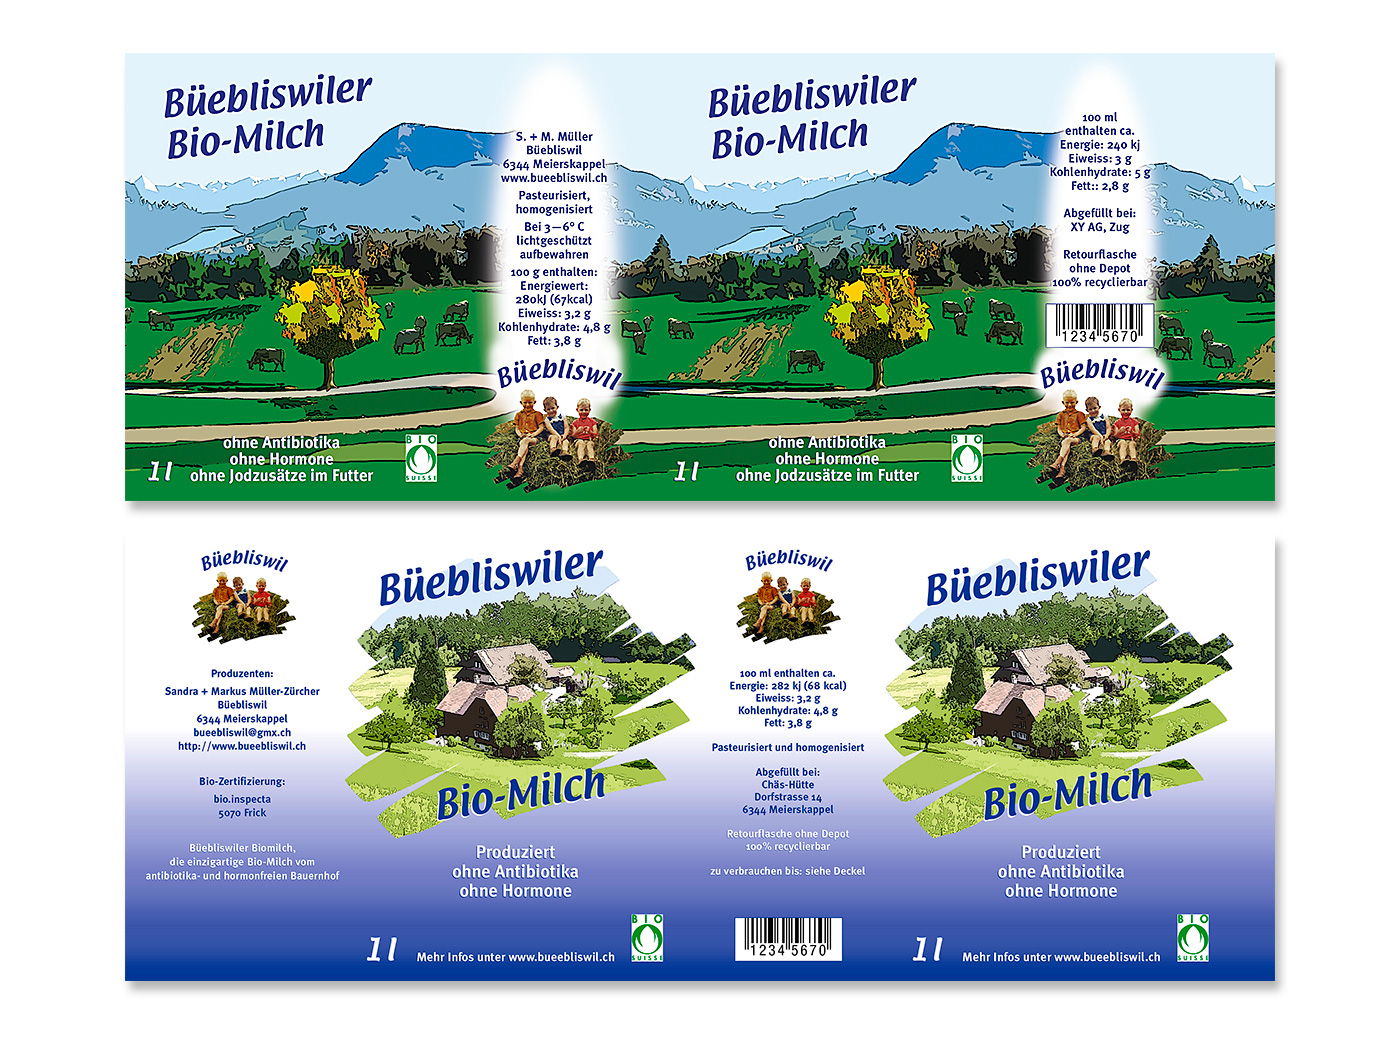 Verpackung, Familie Müller, Bio-Milch